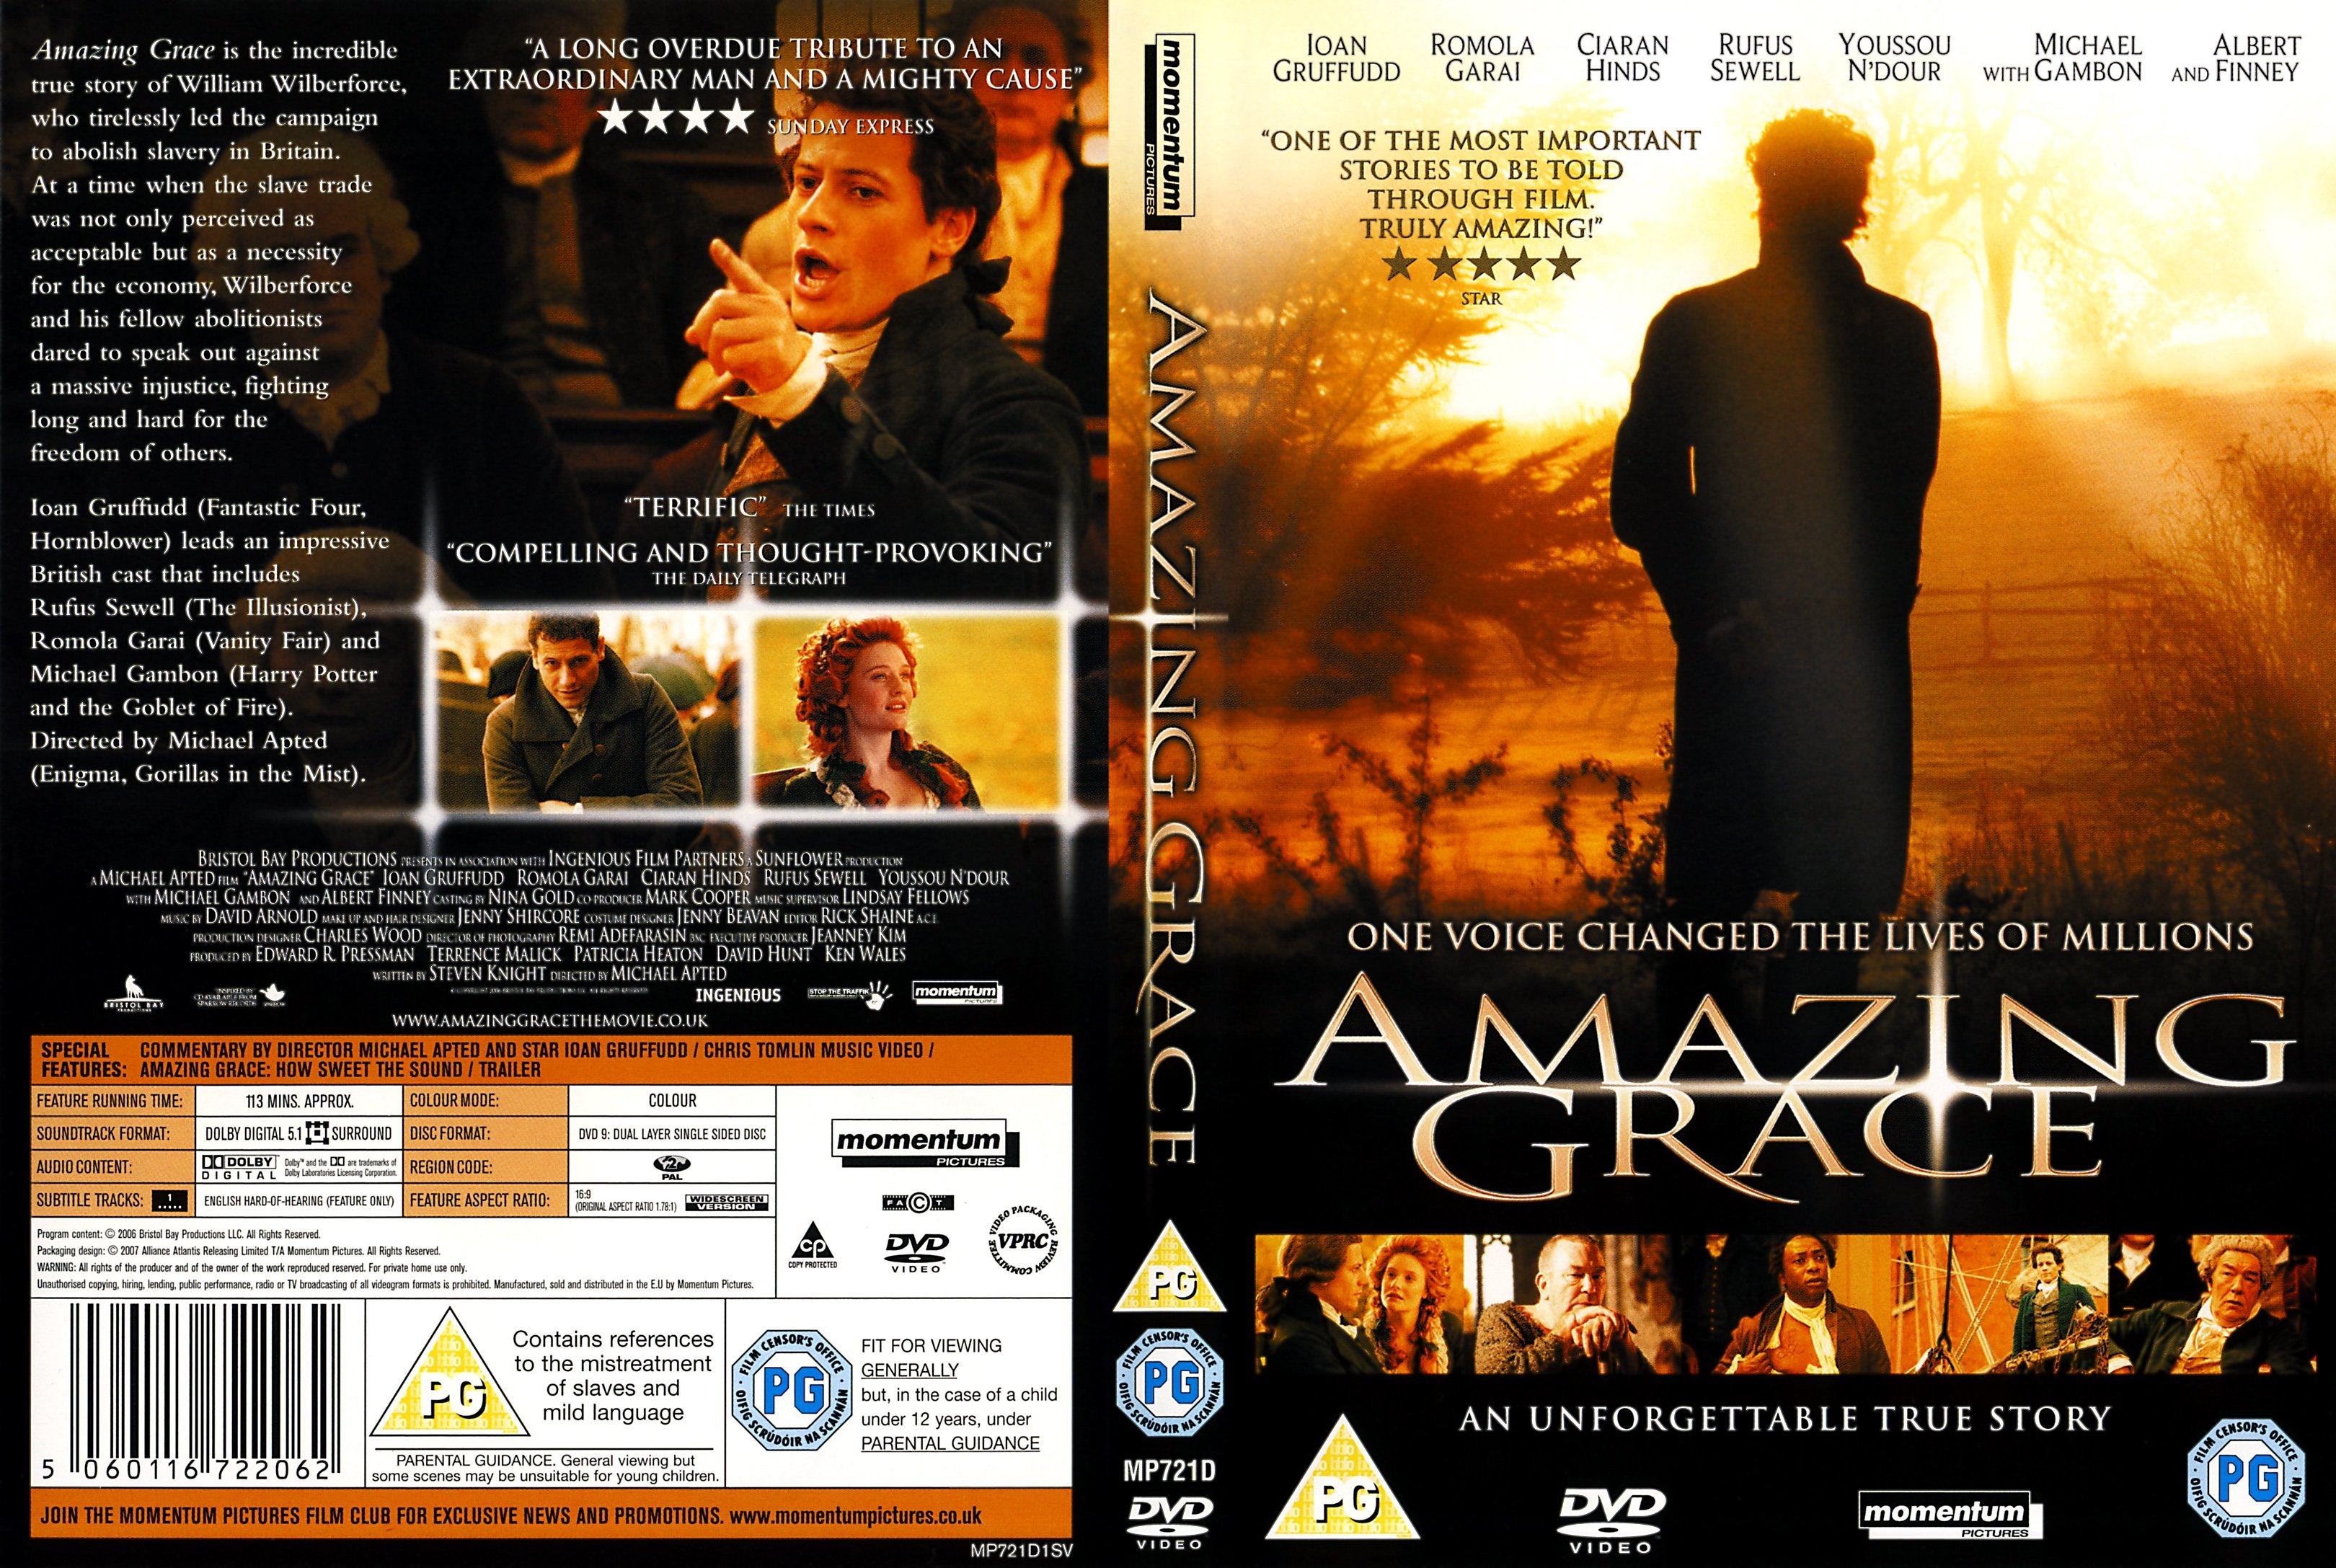 amazing grace film essay Amazing grace, the film: wilberforce vslavery by lita cosner samuel goldwyn films click image for larger view it is the end of the 18 th century, and william wilberforce (ioan grufudd), demoralized and ill from an 8-year-long battle in parliament to ban the slave trade, retreats to the home of his cousins to recuperate.